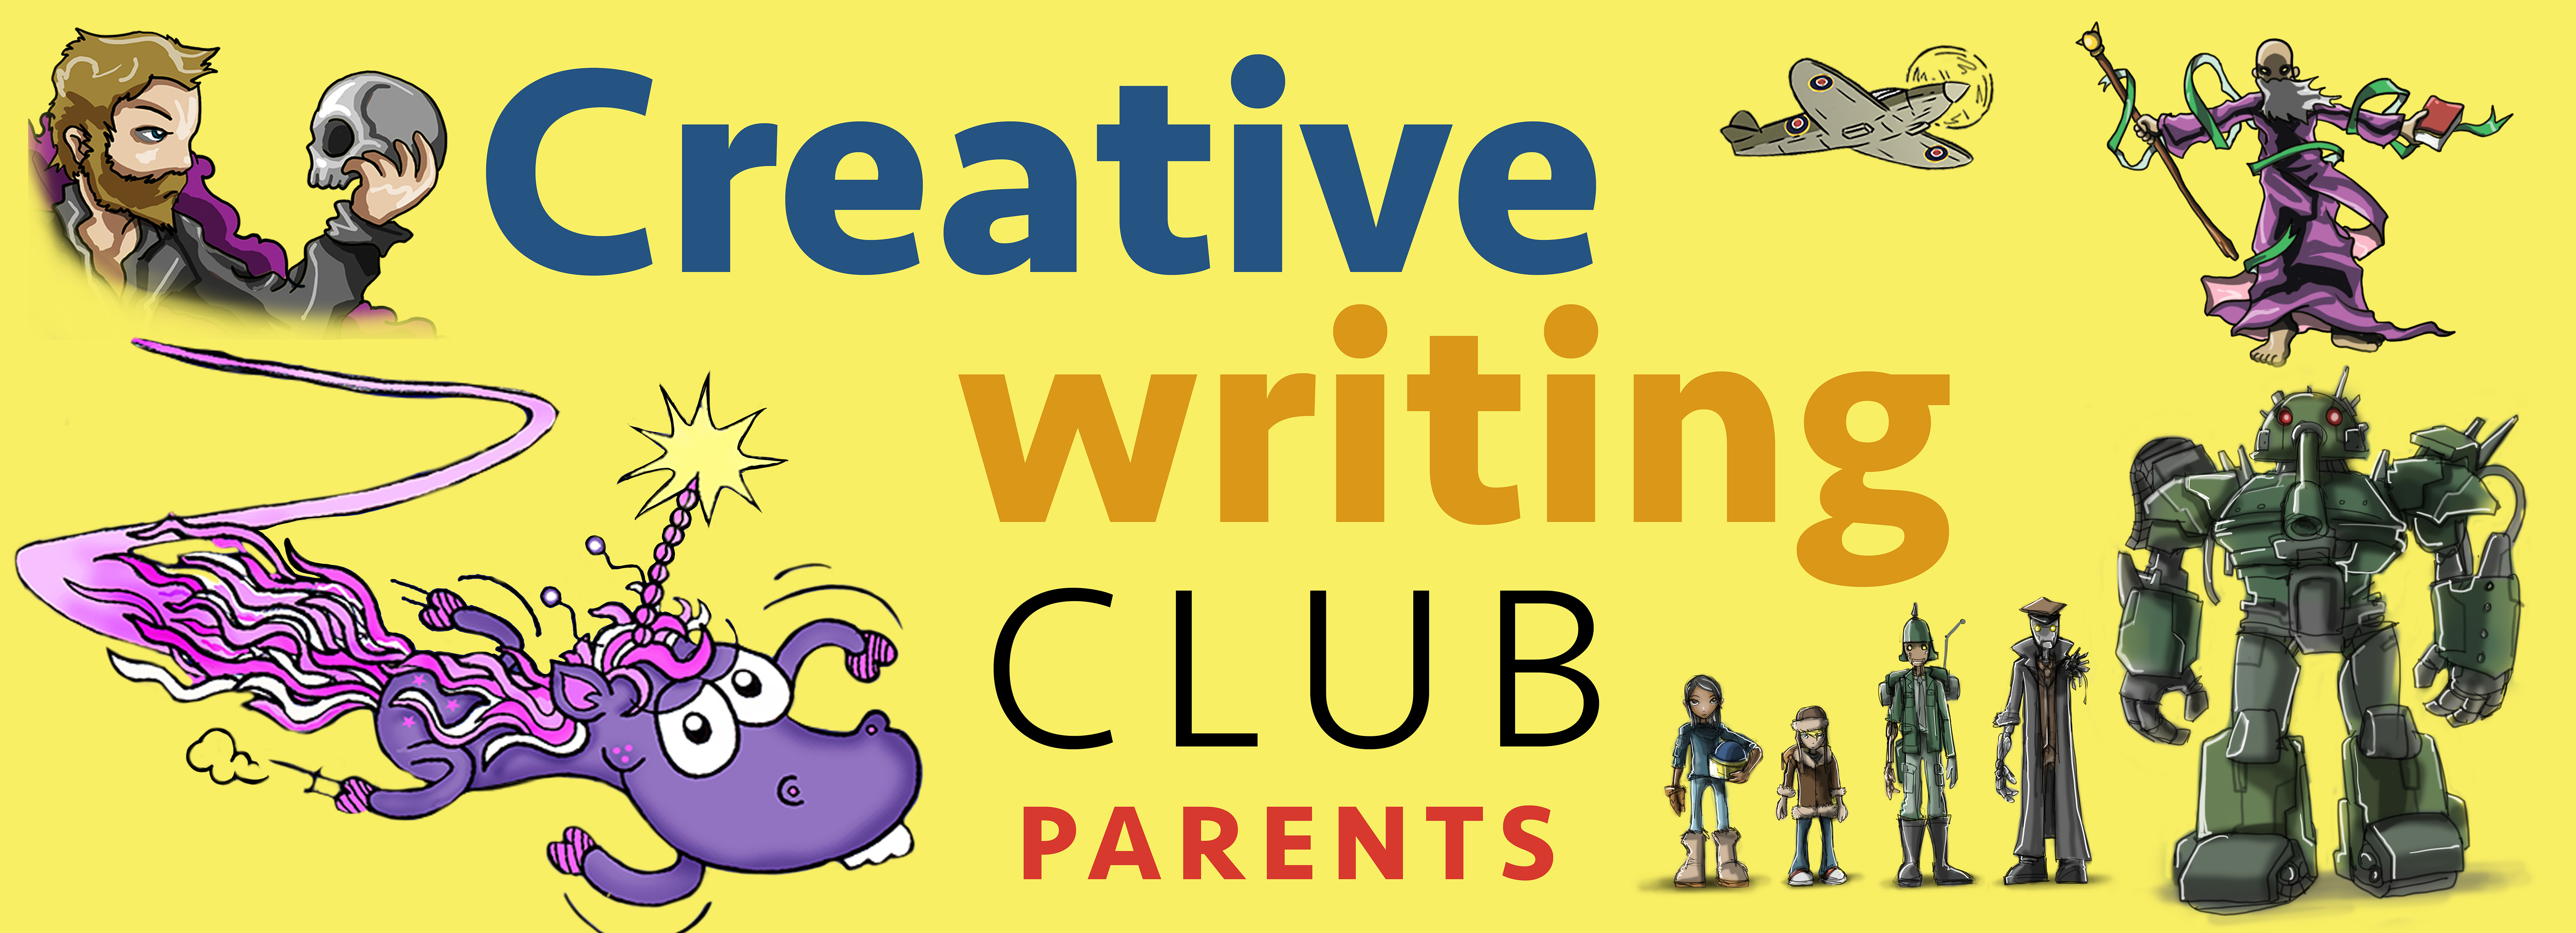 Creative Writing Club - parents edition